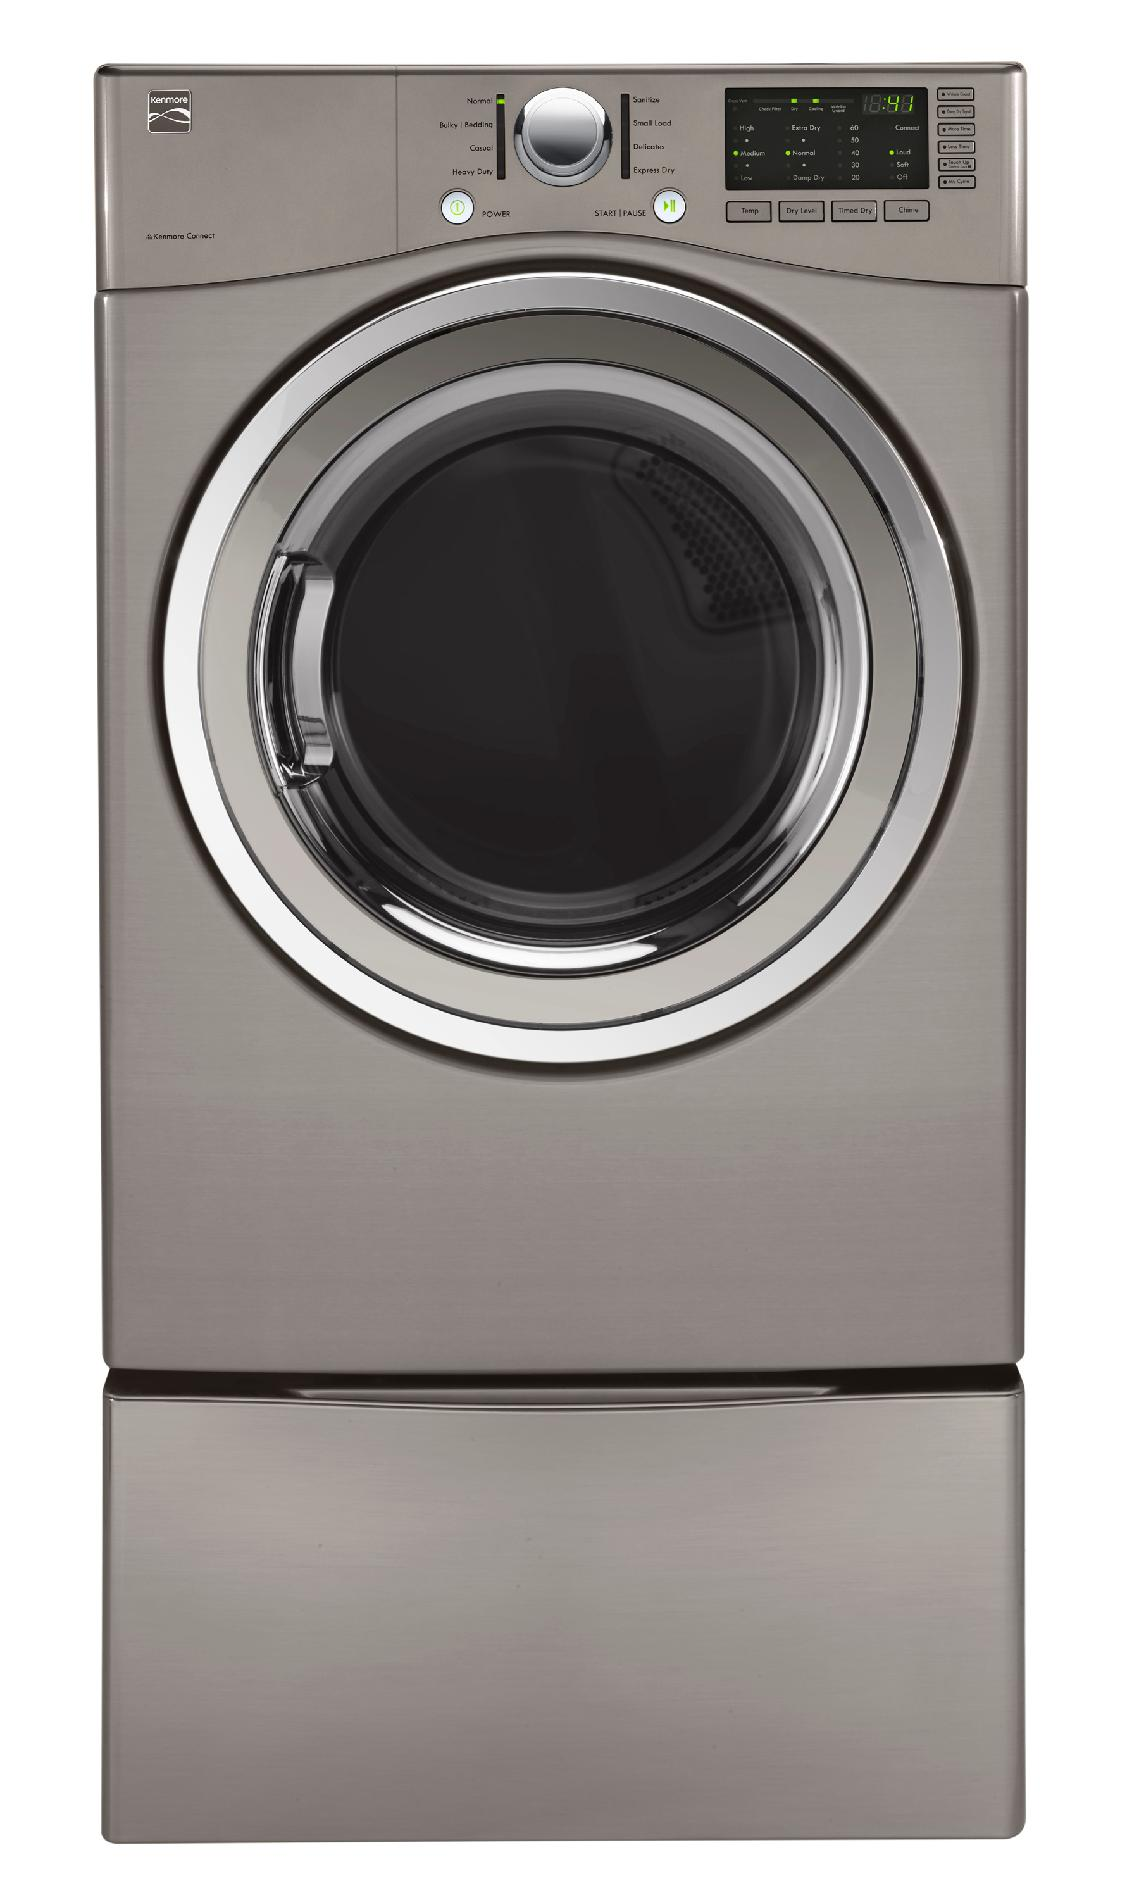 Kenmore 91283 7.3 cu. ft. Gas Dryer - Metallic